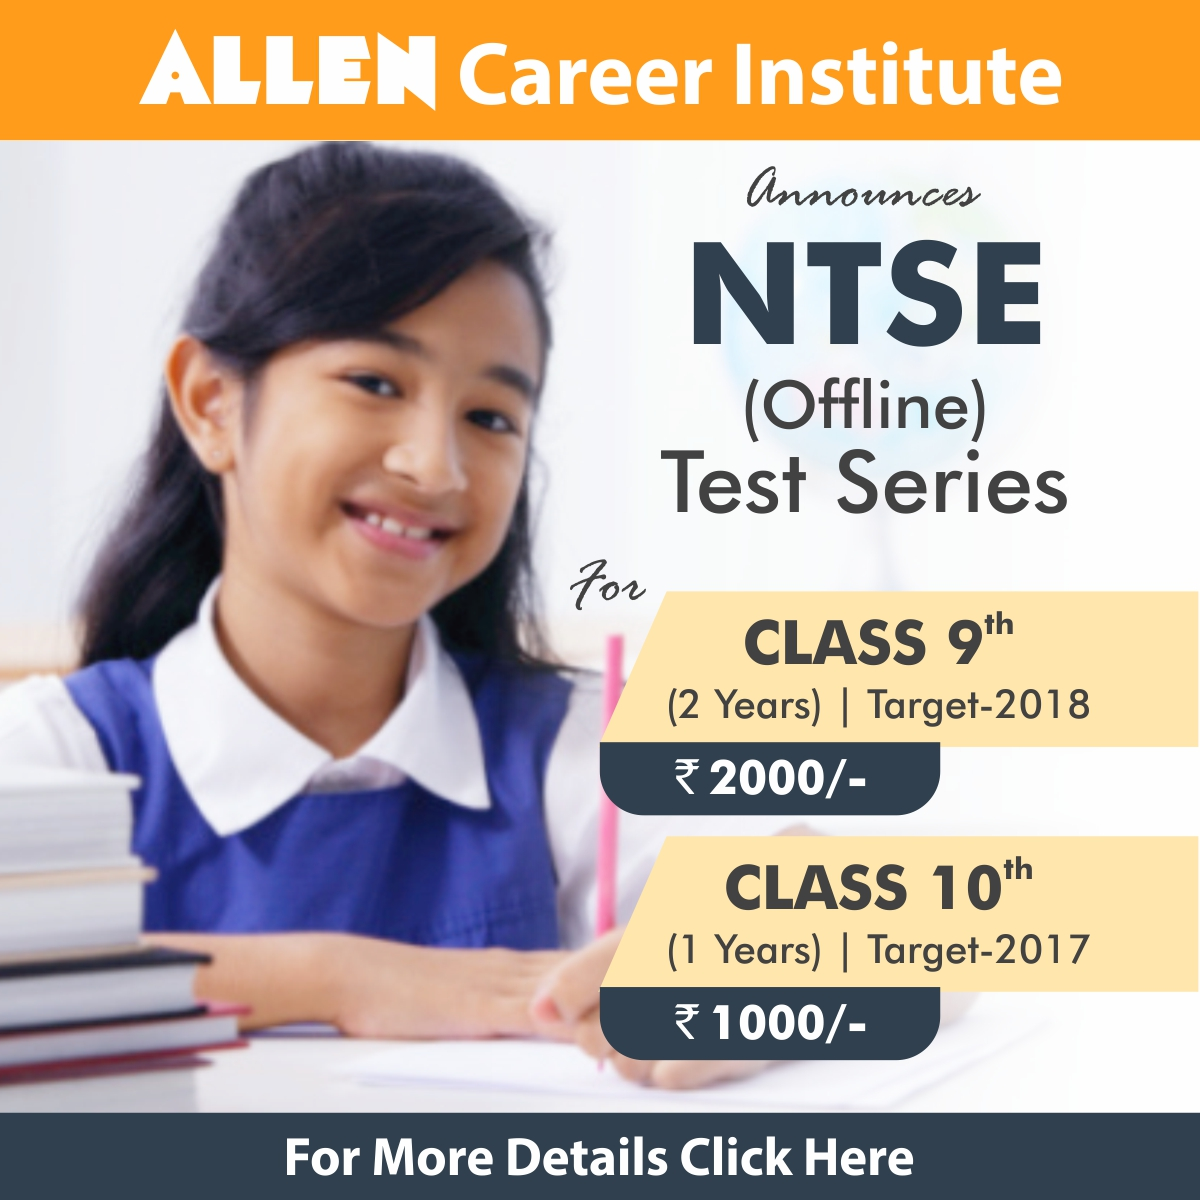 ntse offline test series